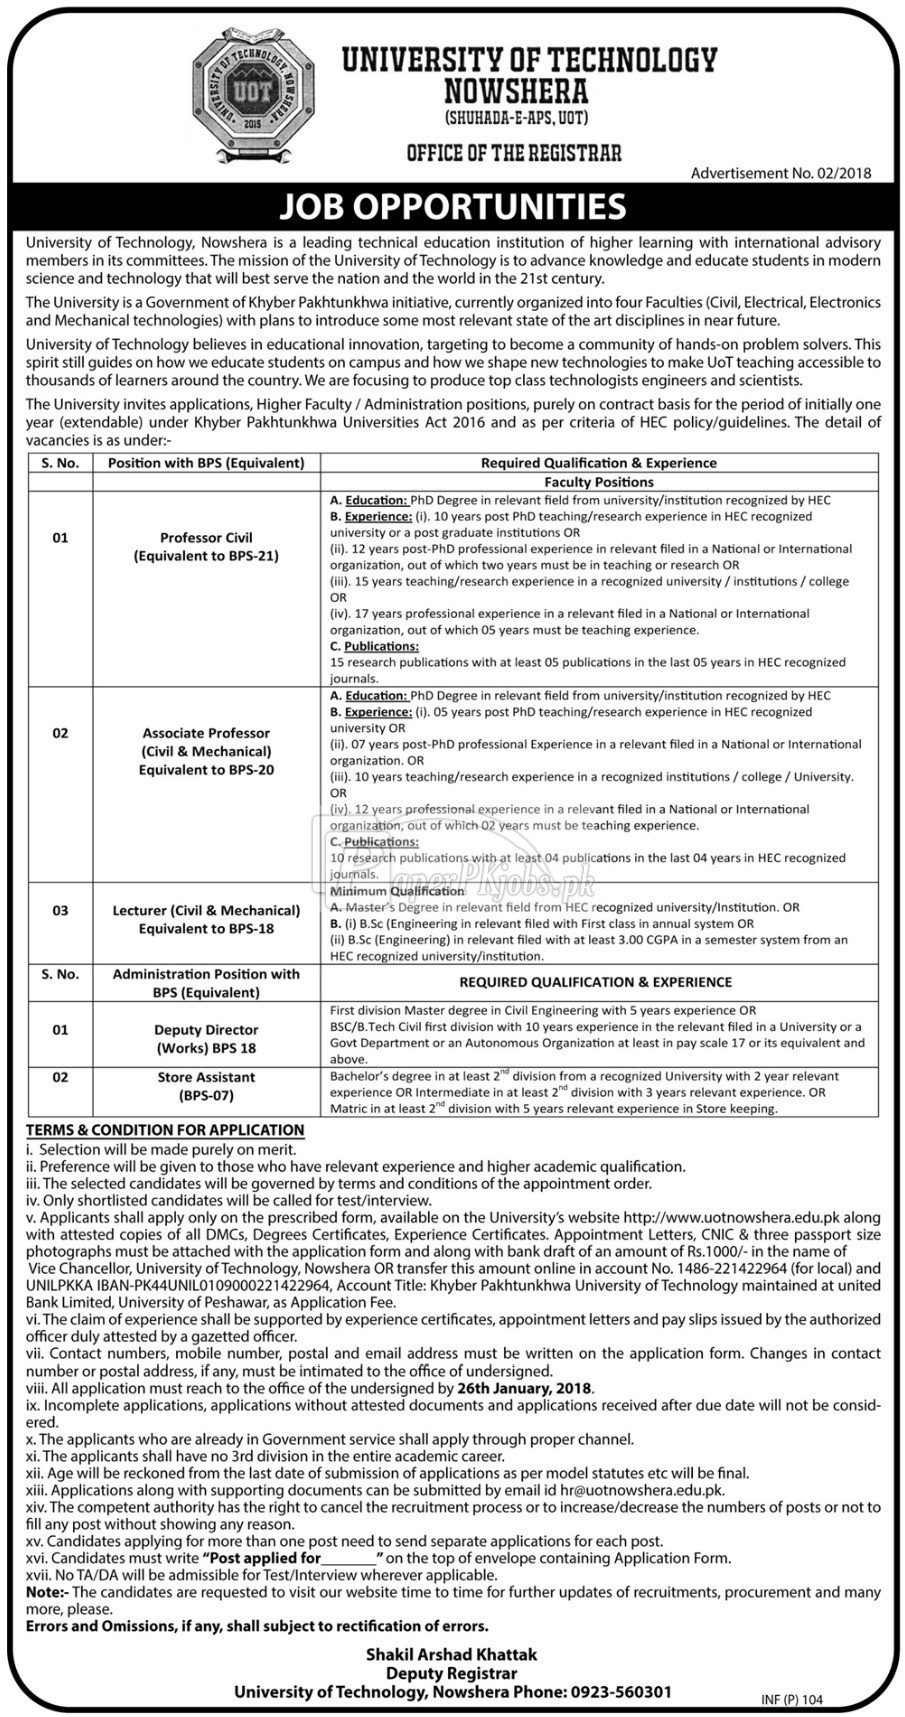 University of Technology Nowshera Jobs 2018(1)